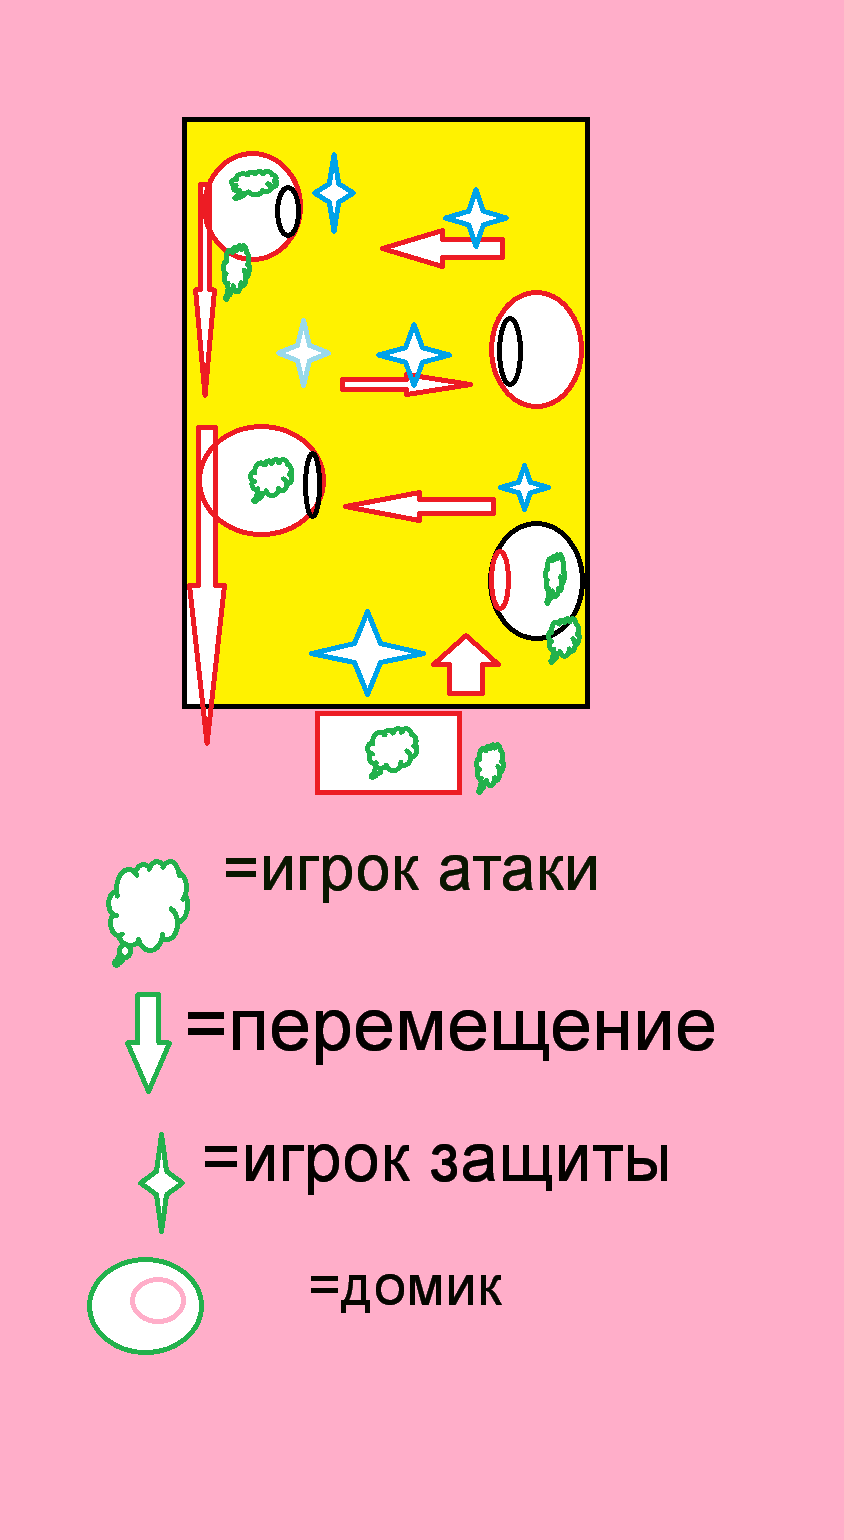 C:\Users\олег\Pictures\ю.png